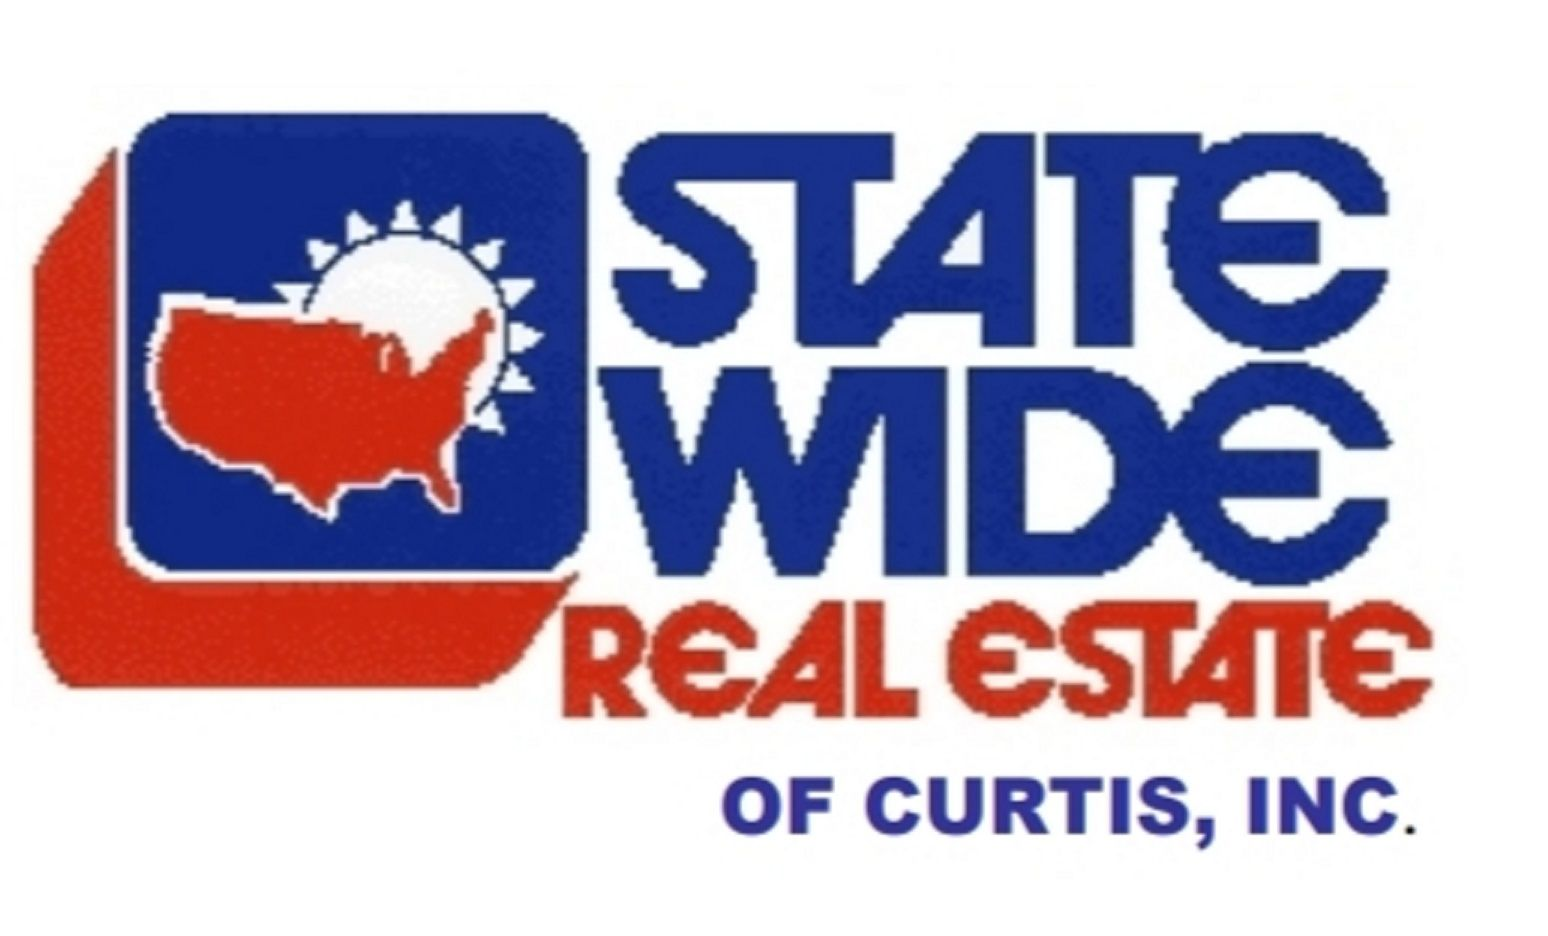 State Wide Real Estate of Curtis, INC